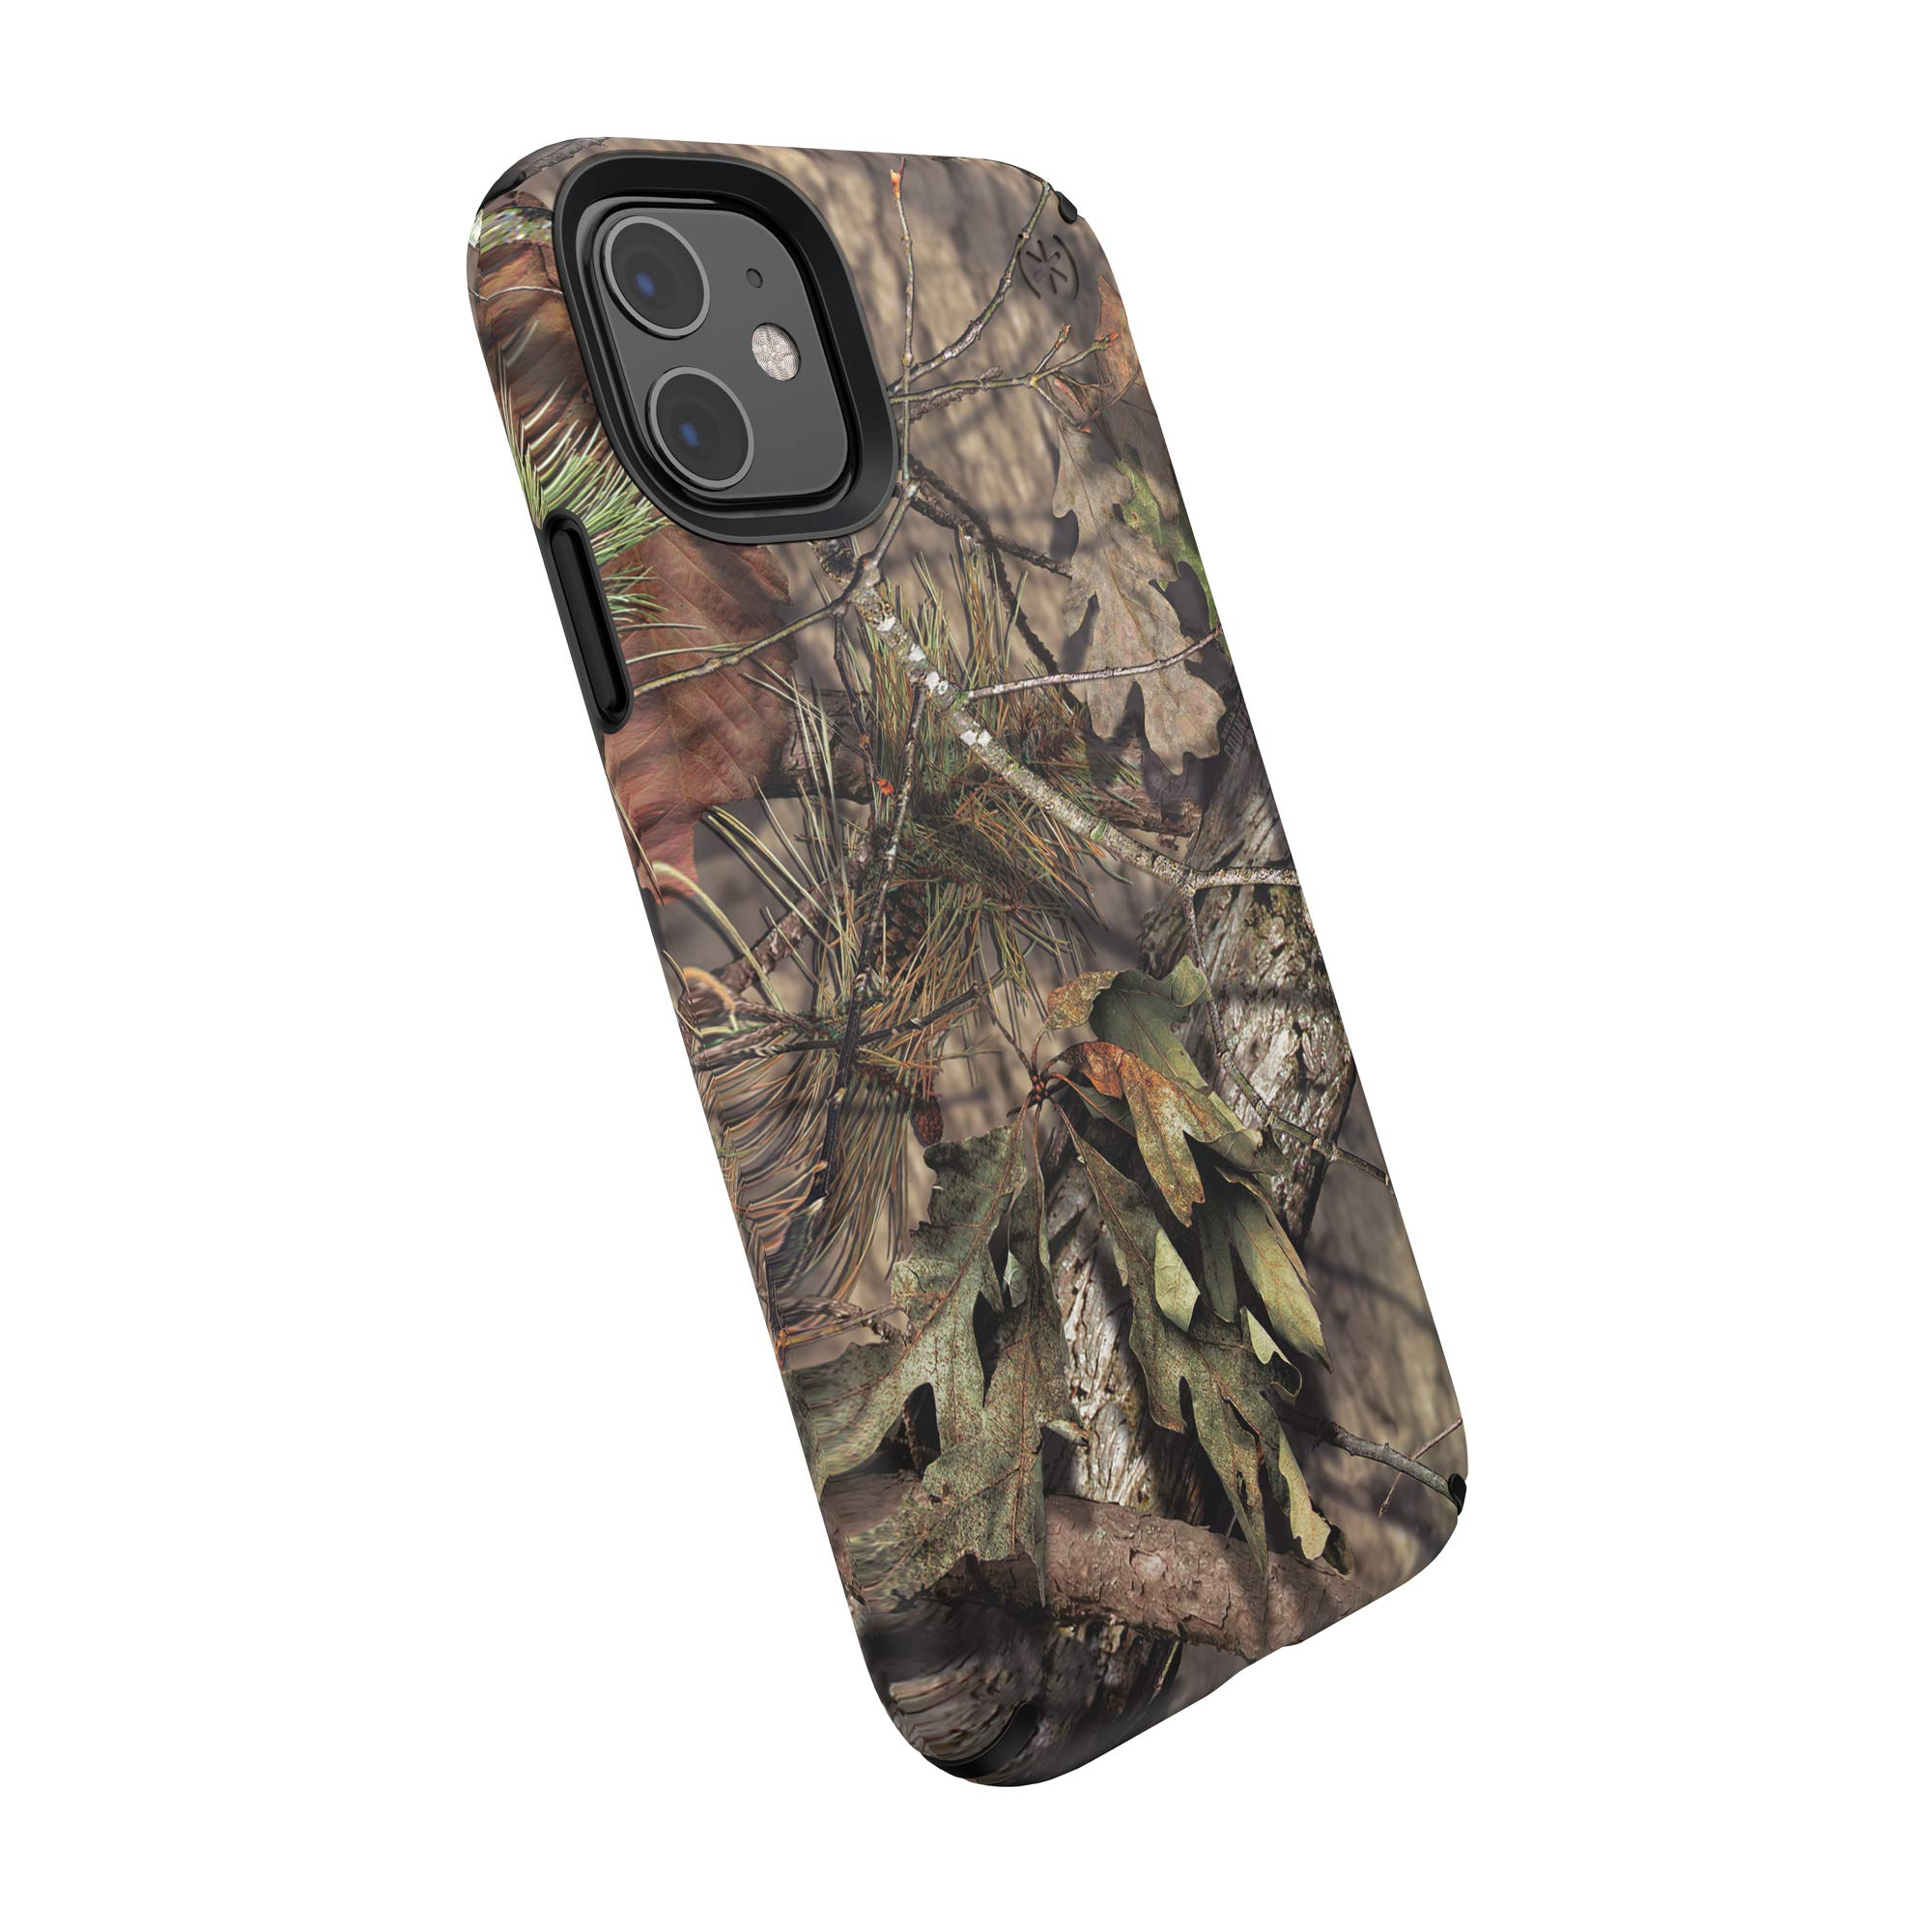 Speck Presidio Inked iPhone 11 Case, Mossy Oak Break-Up Country/Black